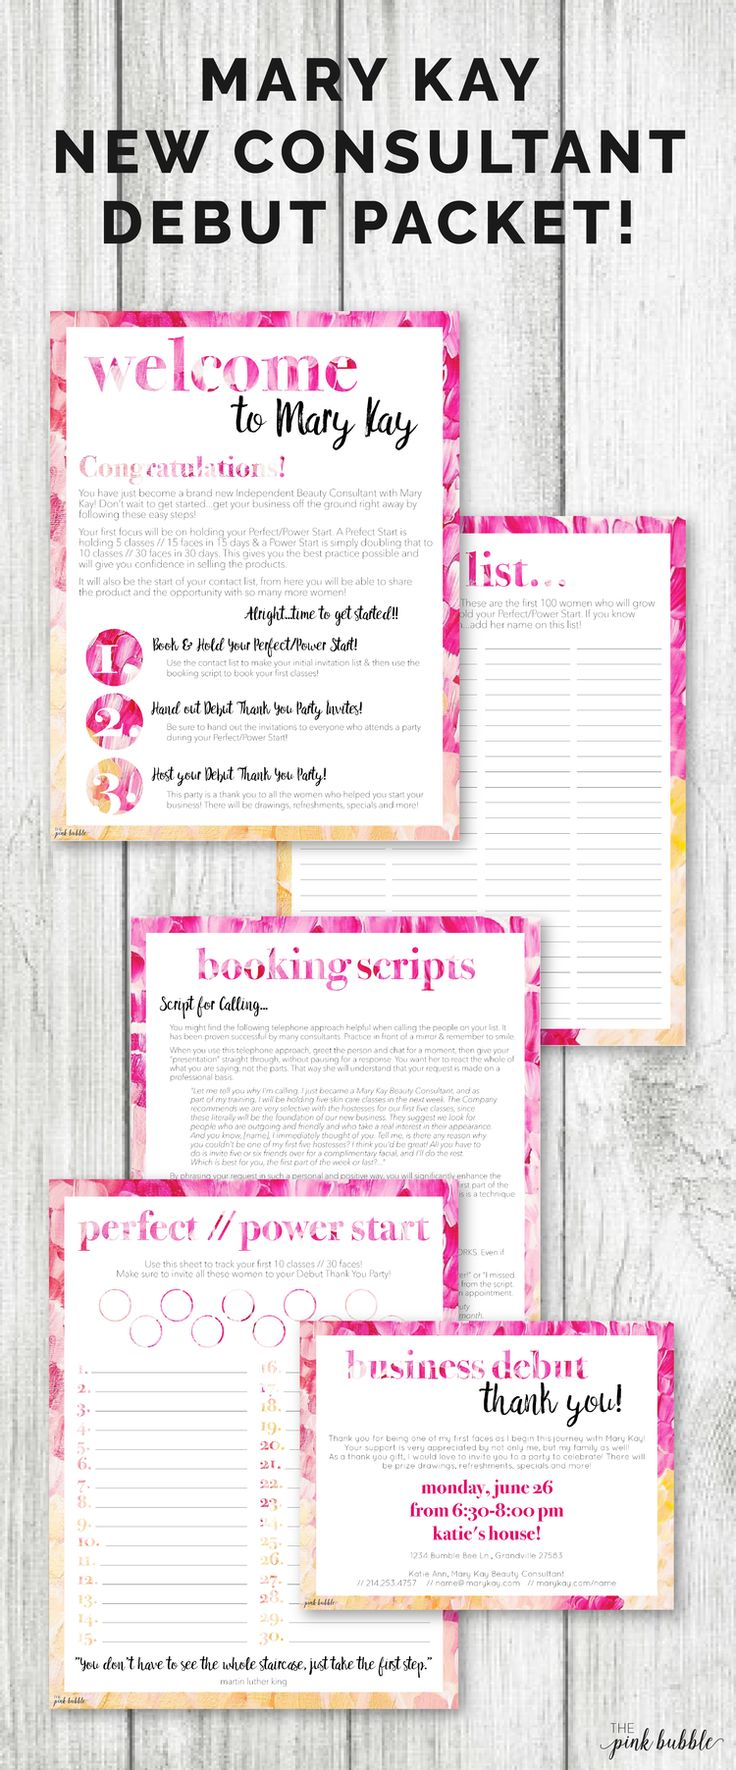 Mary kay online agreement on intouch - Mary Kay New Consultant Debut Party Packet Start Your Business On The Right Foot